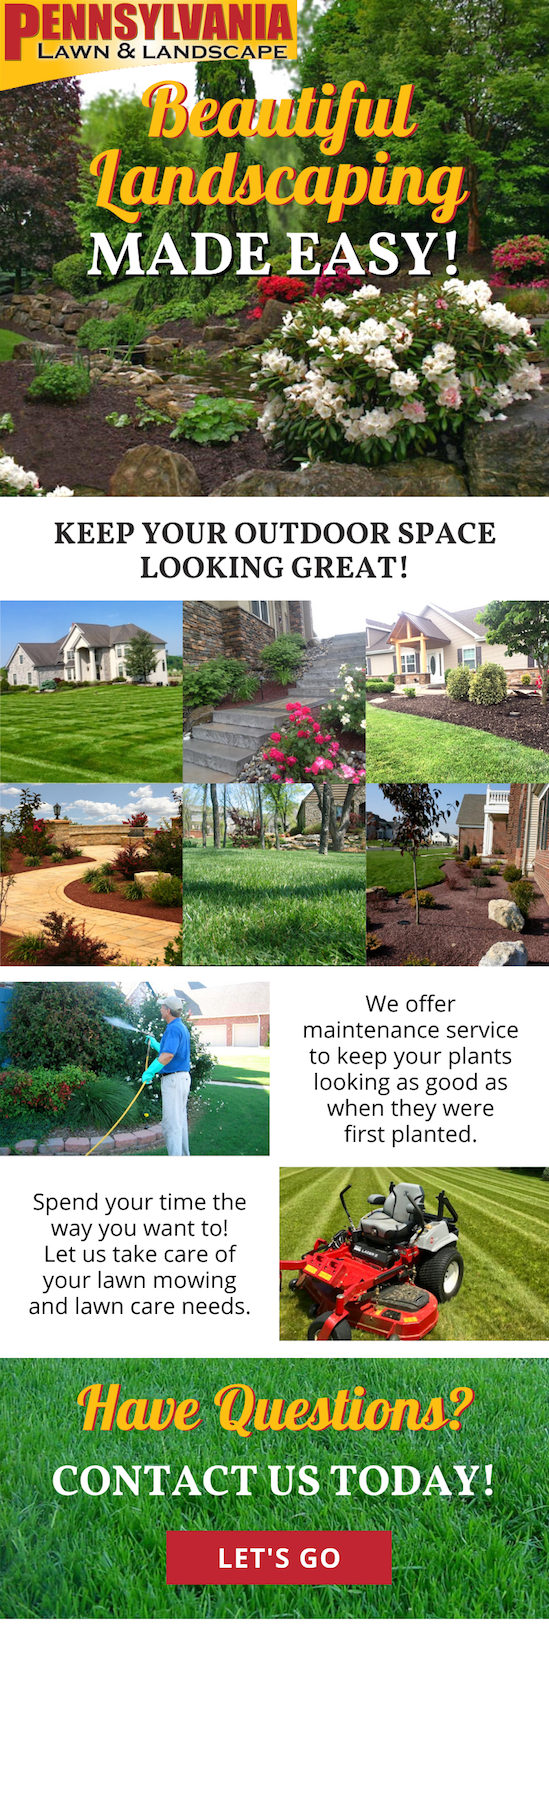 Beautiful Landscaping Made Easy! 3